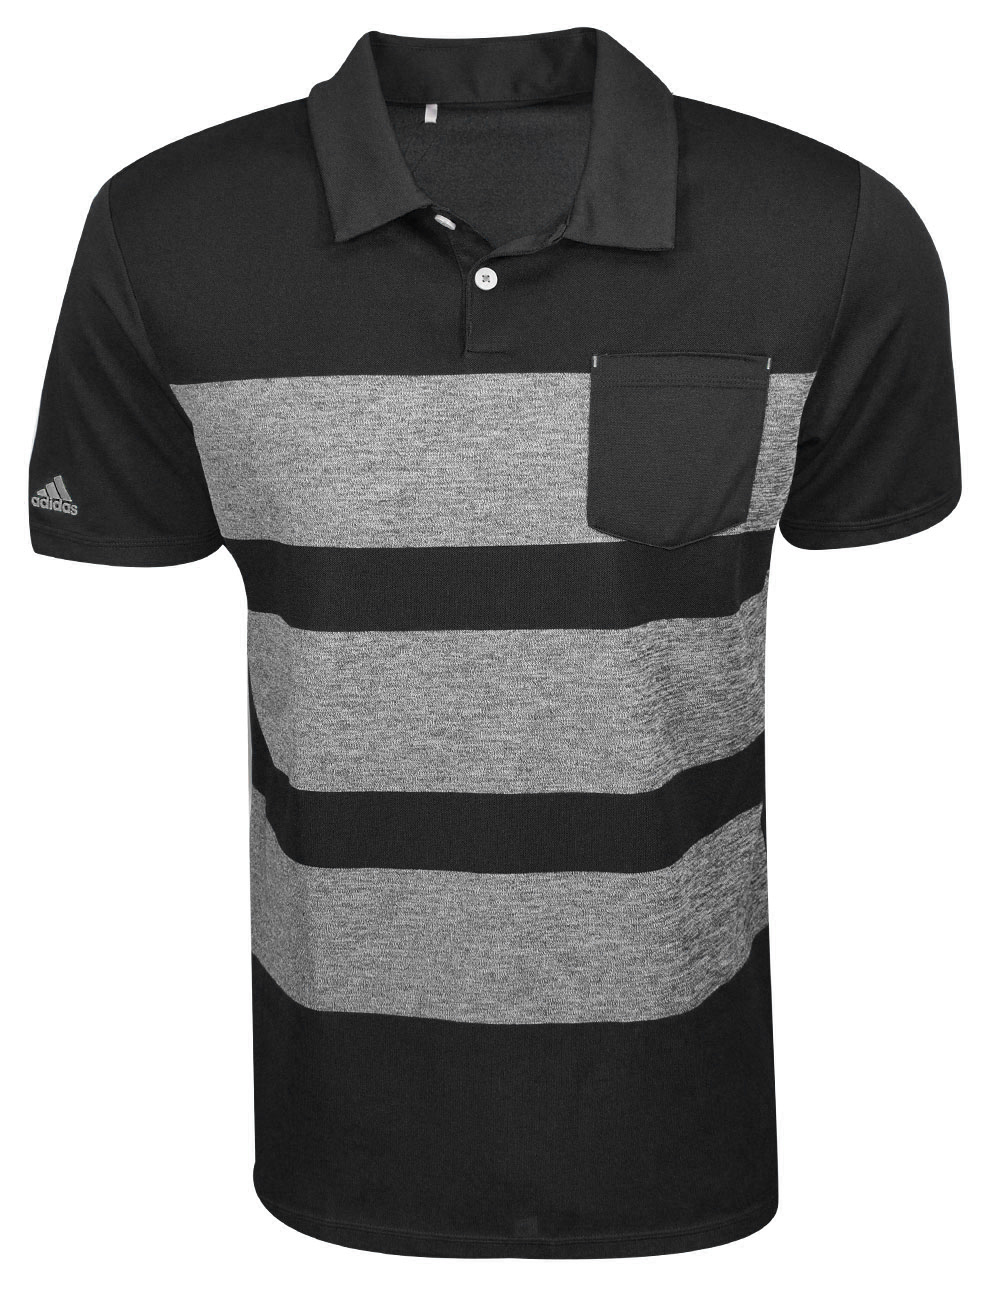 74572a97 Adidas Golf 3-Stripes Mapped Polo (Closeout) | RockBottomGolf.com